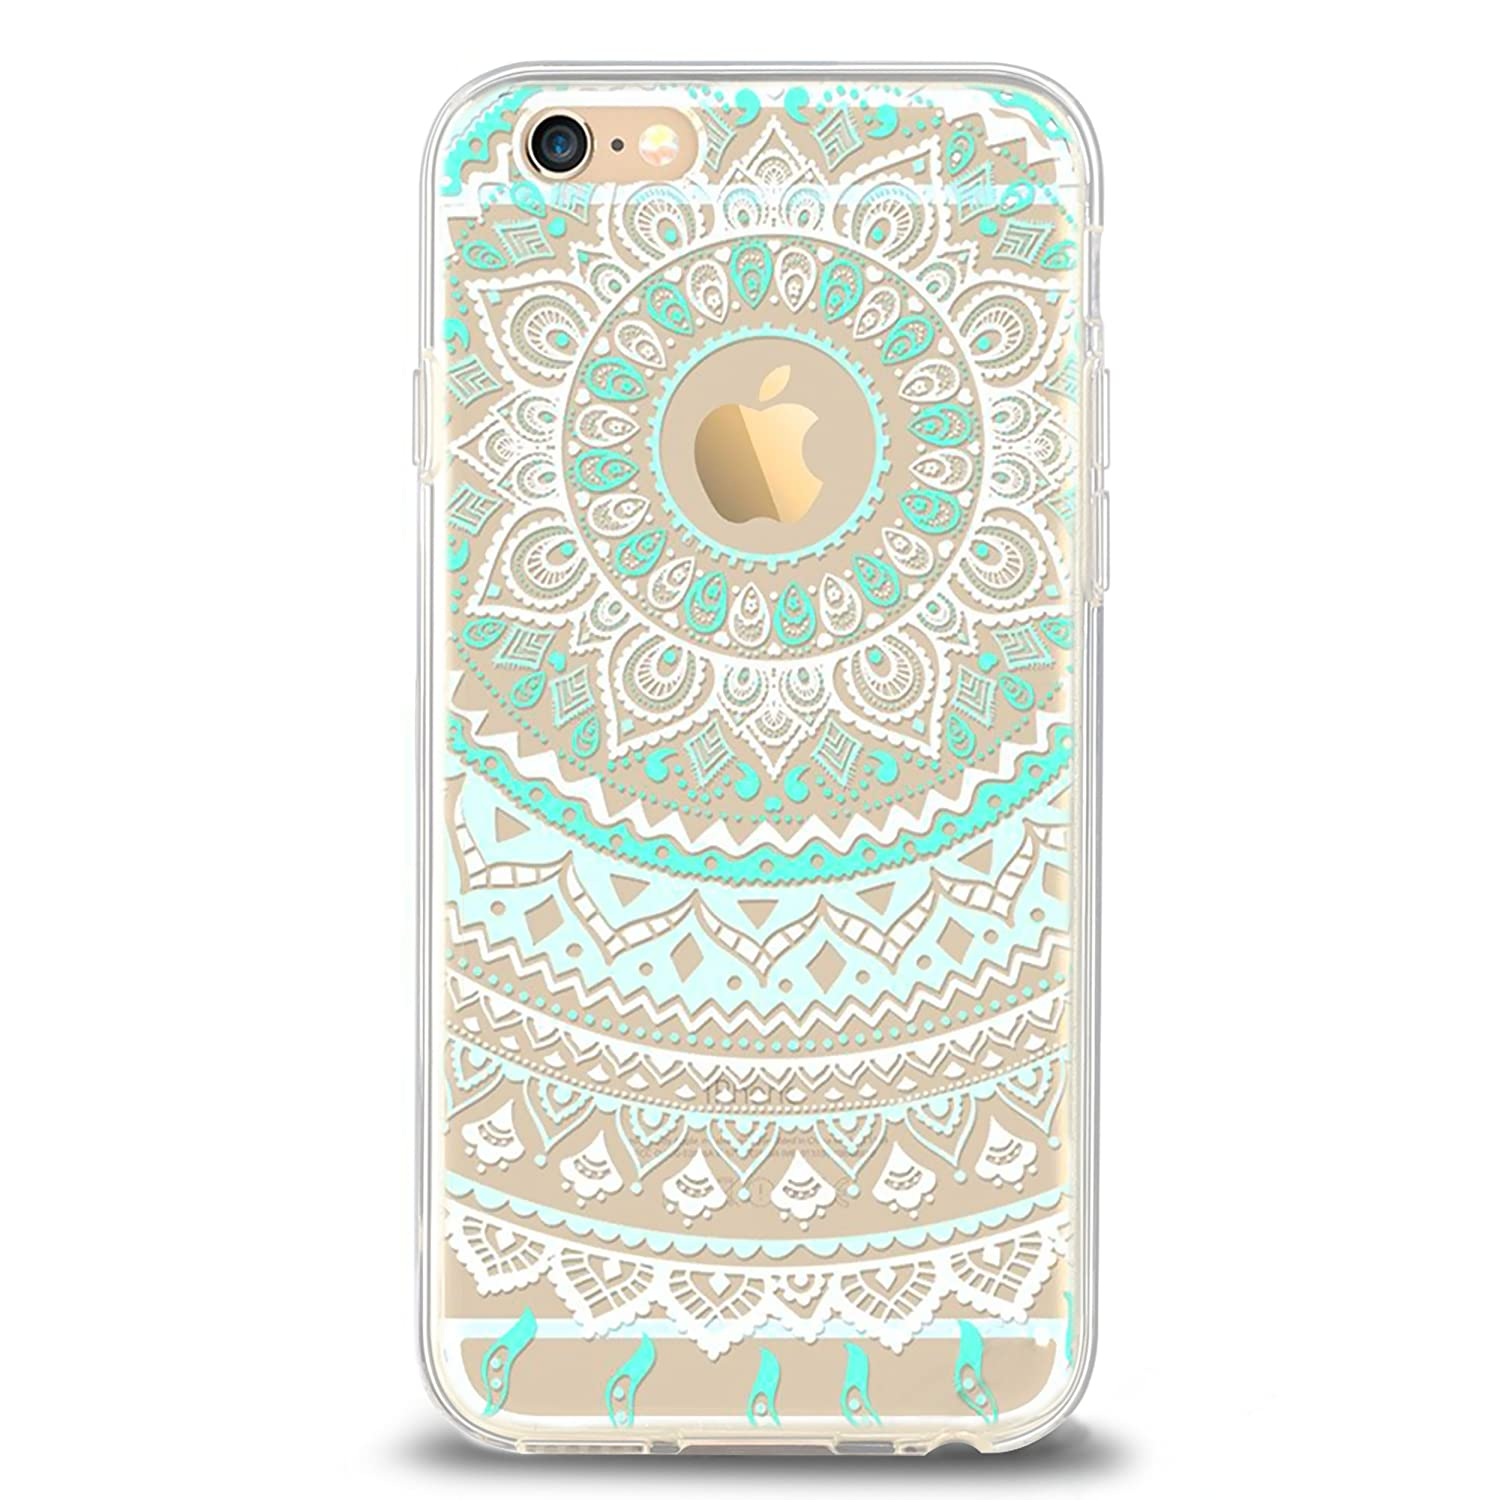 iphone cases for iphone 6